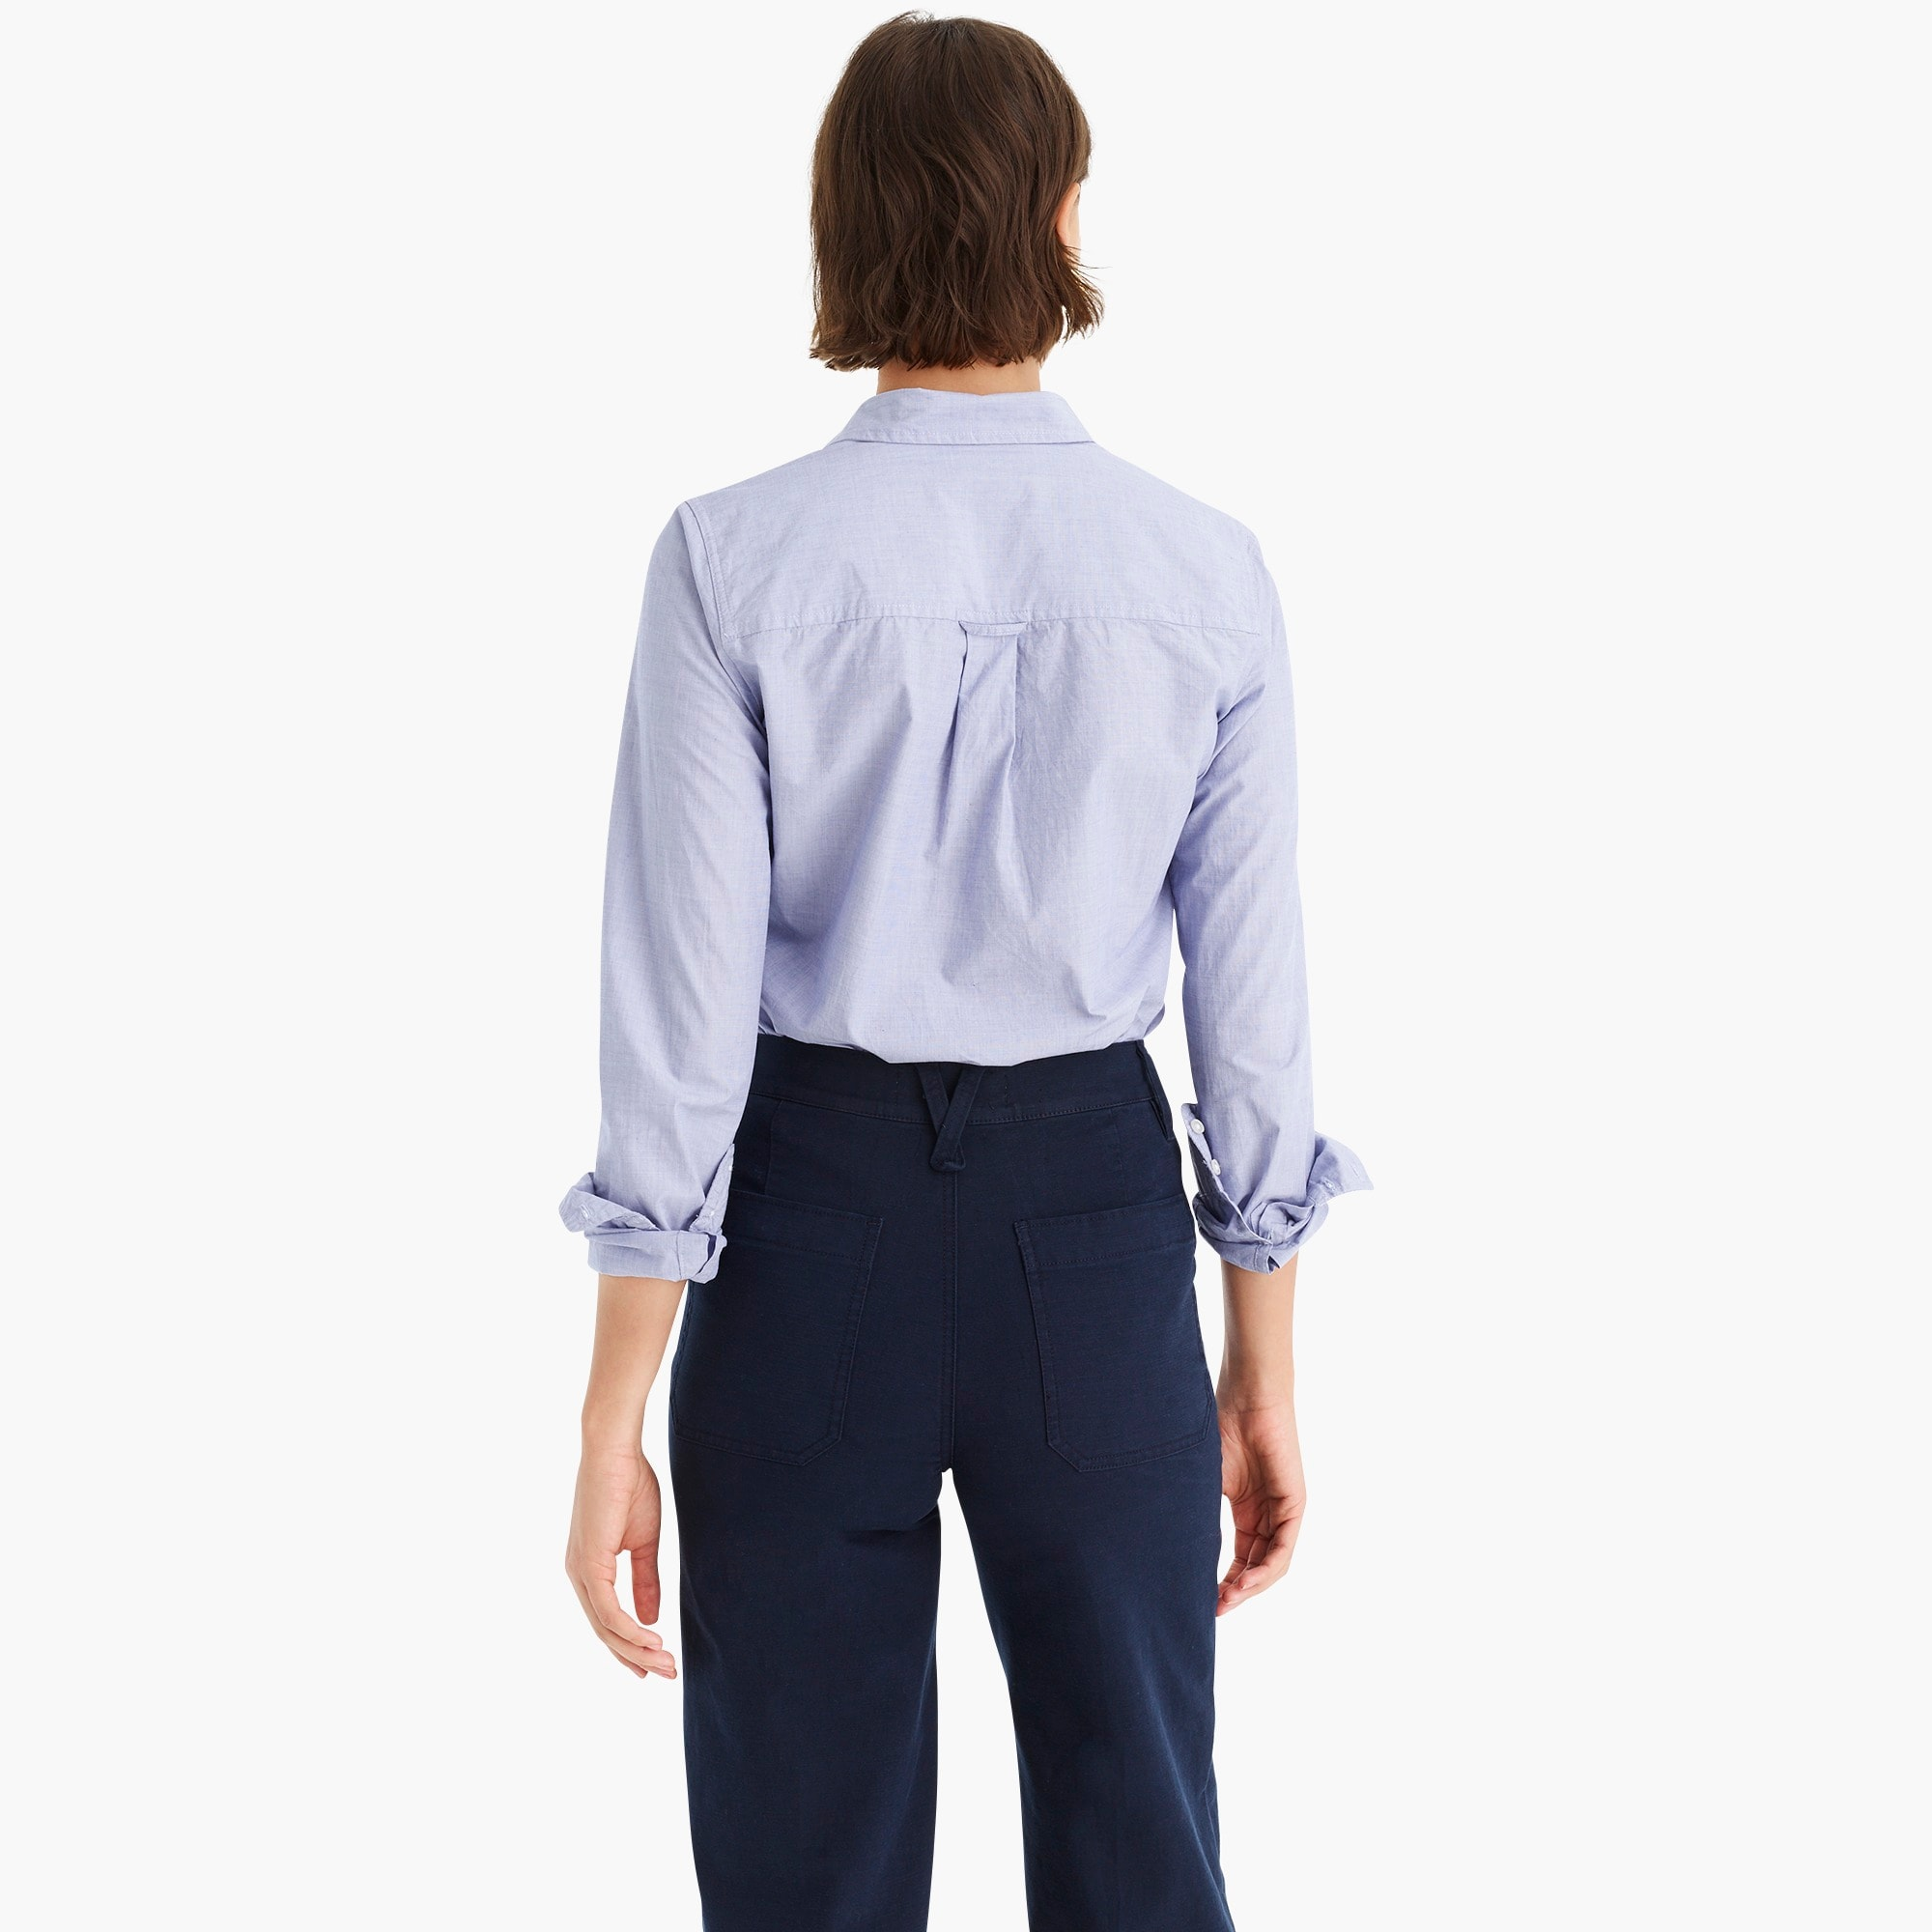 Image 5 for Classic-fit boy shirt in end-on-end cotton